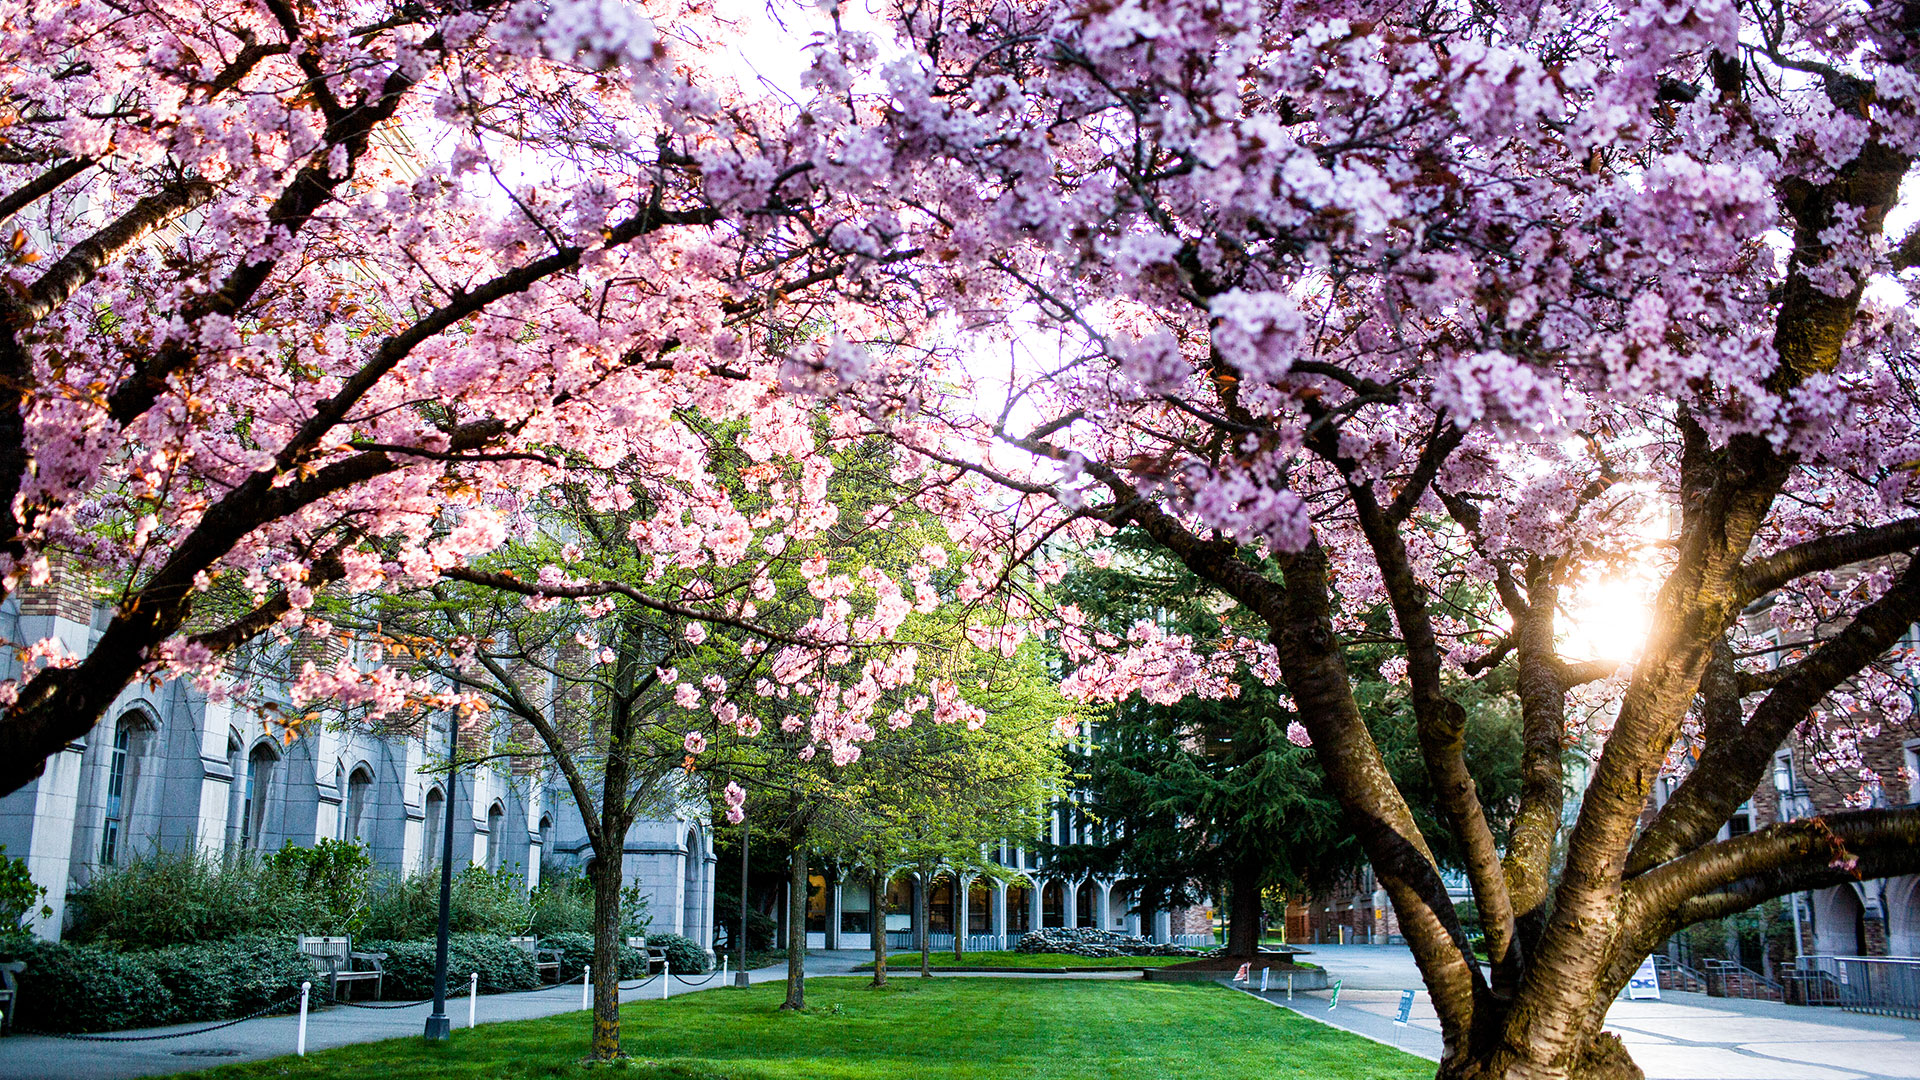 Cherry trees by Allen Library